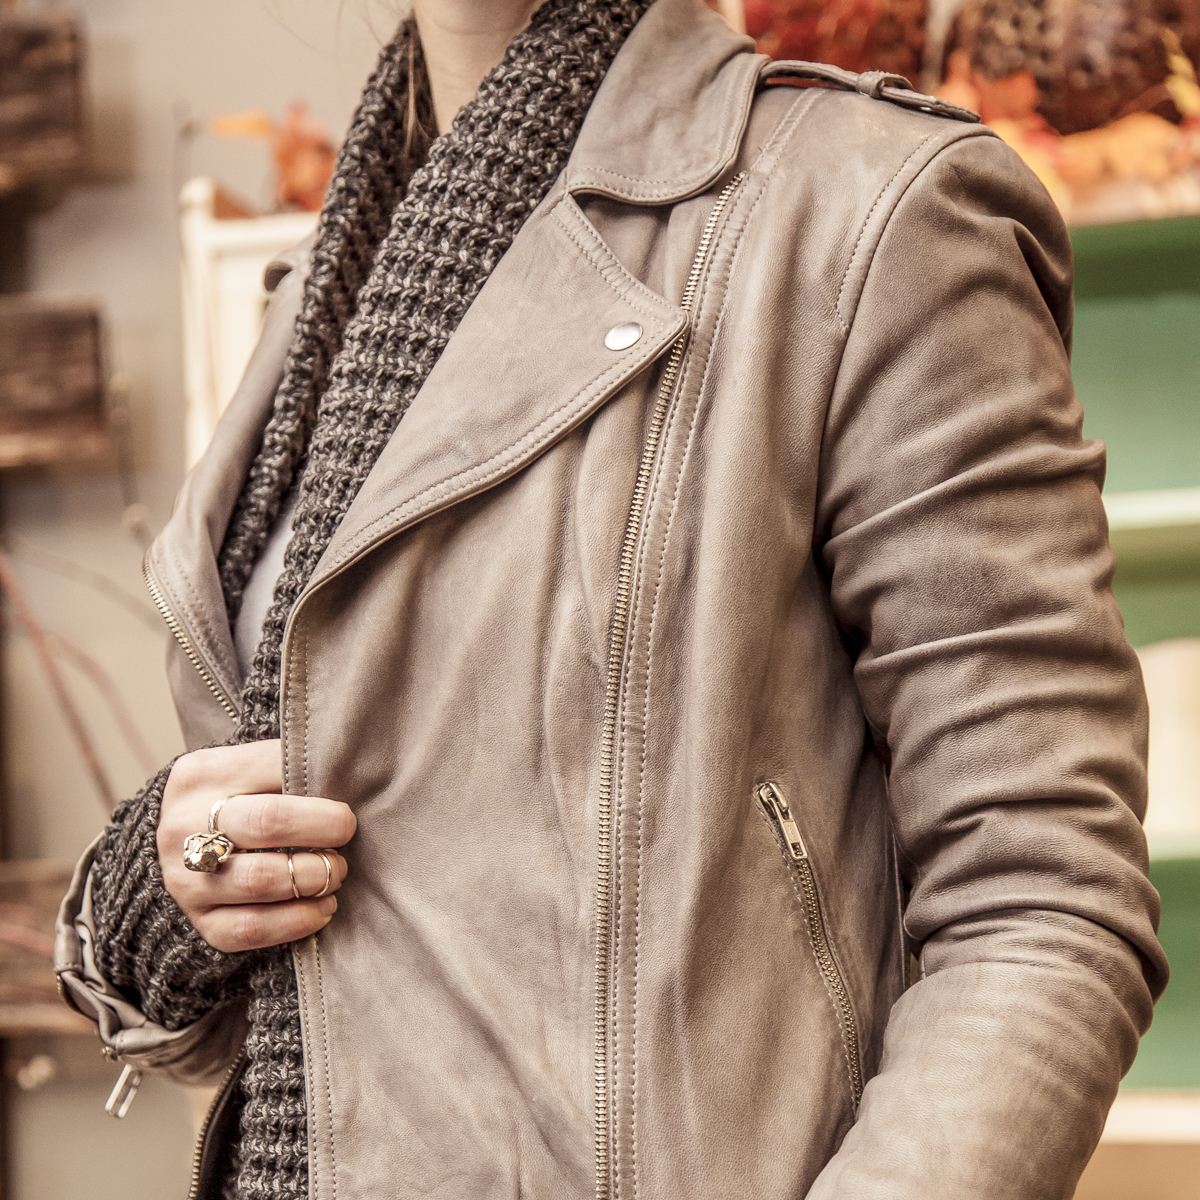 leather-jackets-at-bella-maas-boutique-sherwood-park-and-st-albert-2